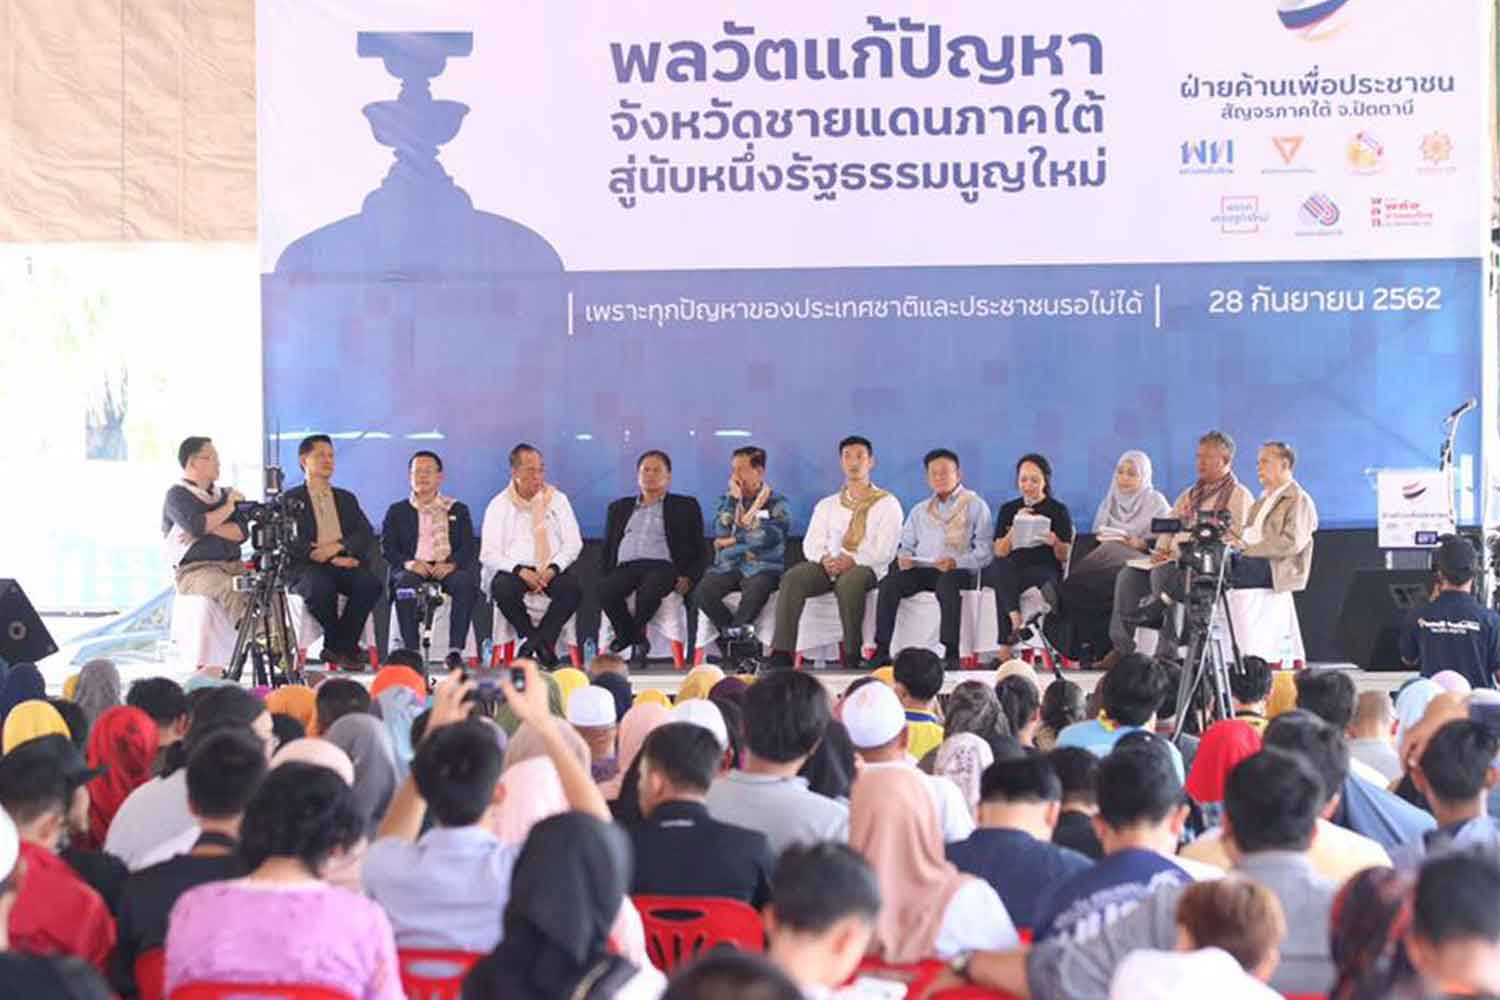 Key representatives of opposition parties share their views on the constitution in front of the Pattani provincial hall in Pattani province on Sept 28. (Photo from the Pheu Thai Party)